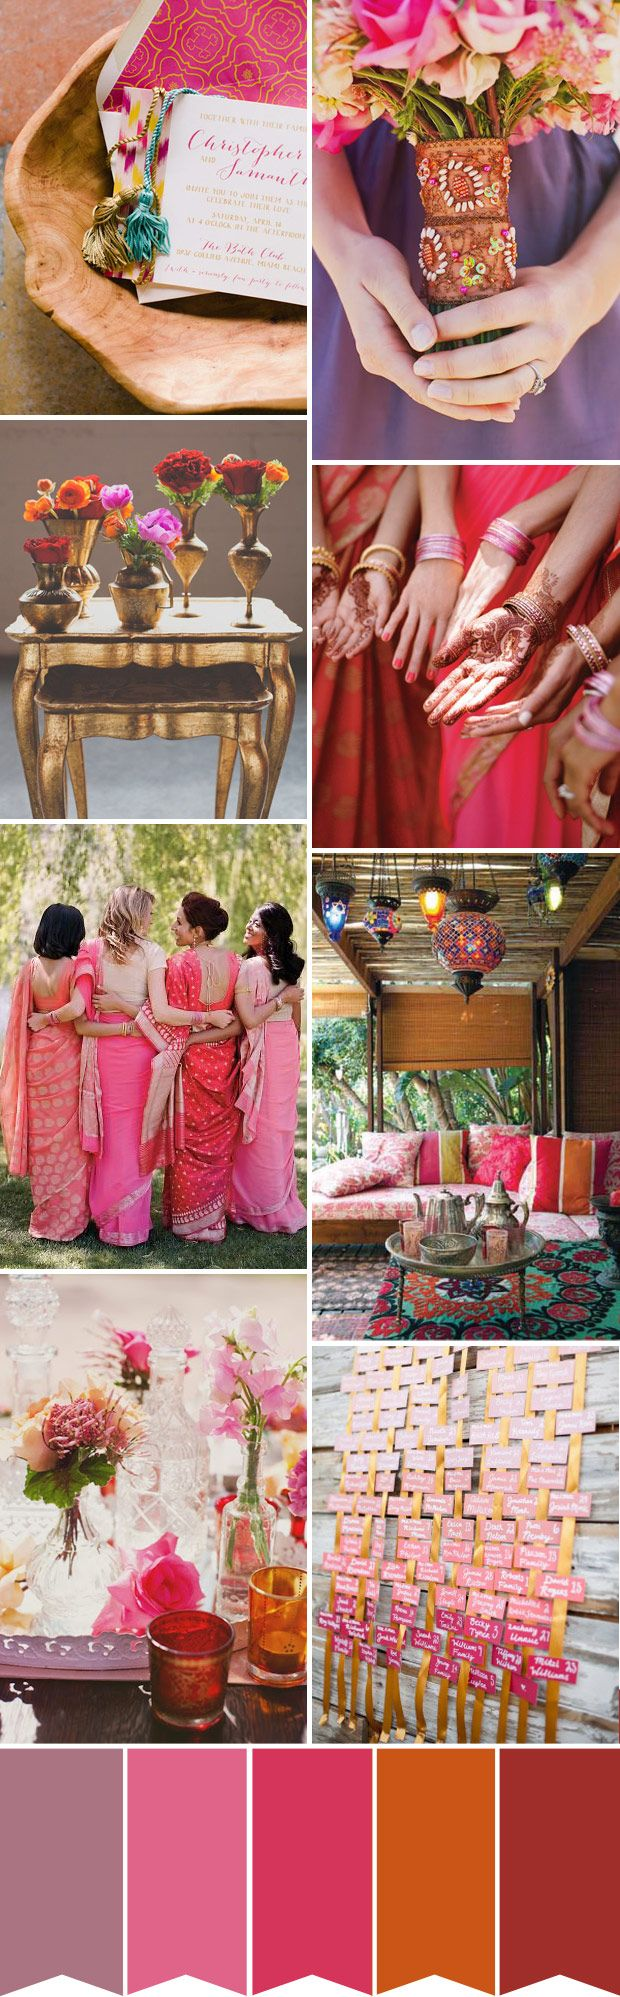 Indian Summer Wedding Inspiration - Read more on One Fab Day: http://onefabday.com/indian-summer-wedding-colour-palette/